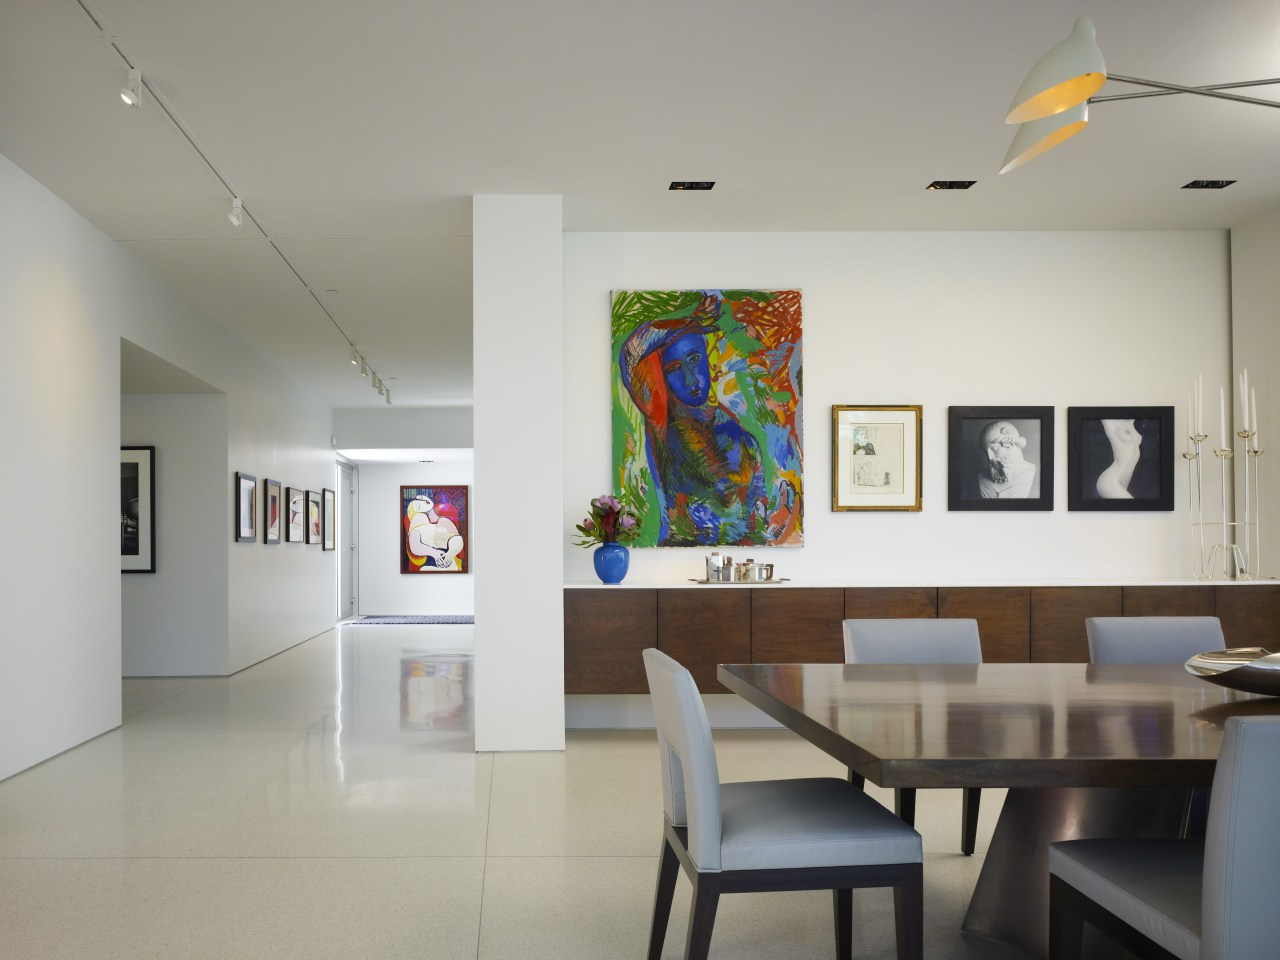 The large painting above the buffet in this art, art exhibition, art gallery, ceiling, exhibition, interior design, table, tourist attraction, gray